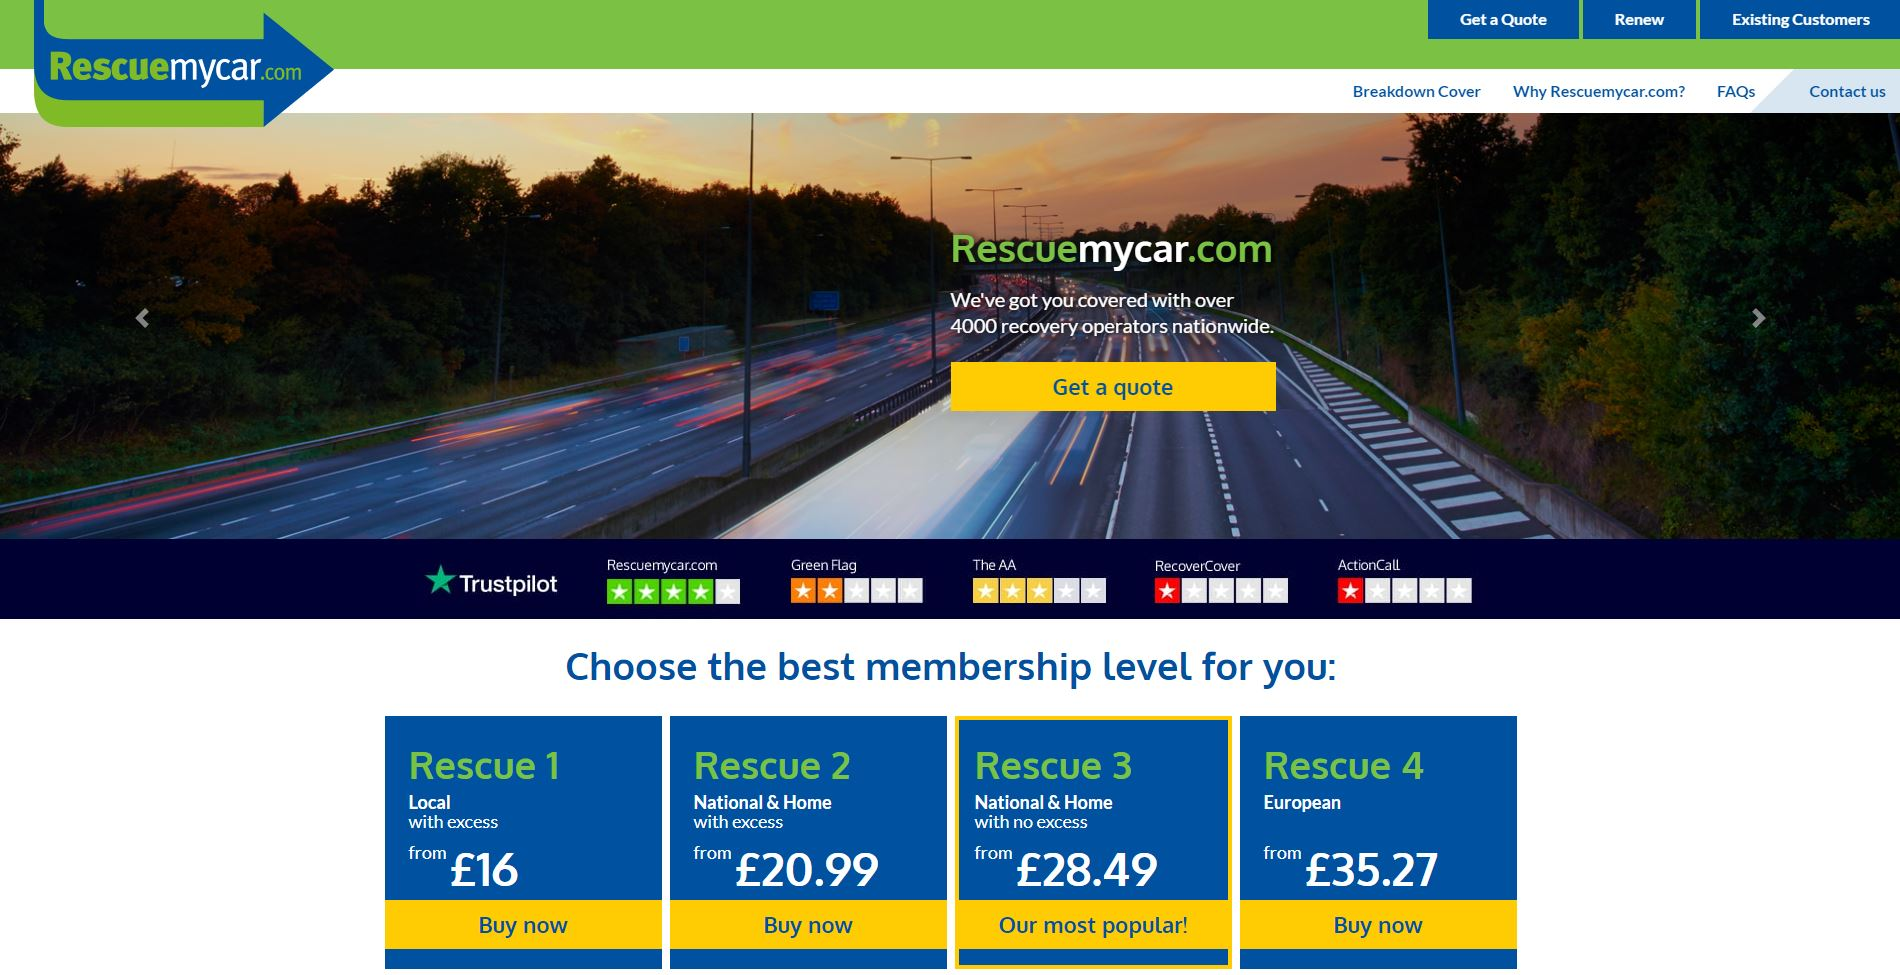 RescueMyCar's website homepage